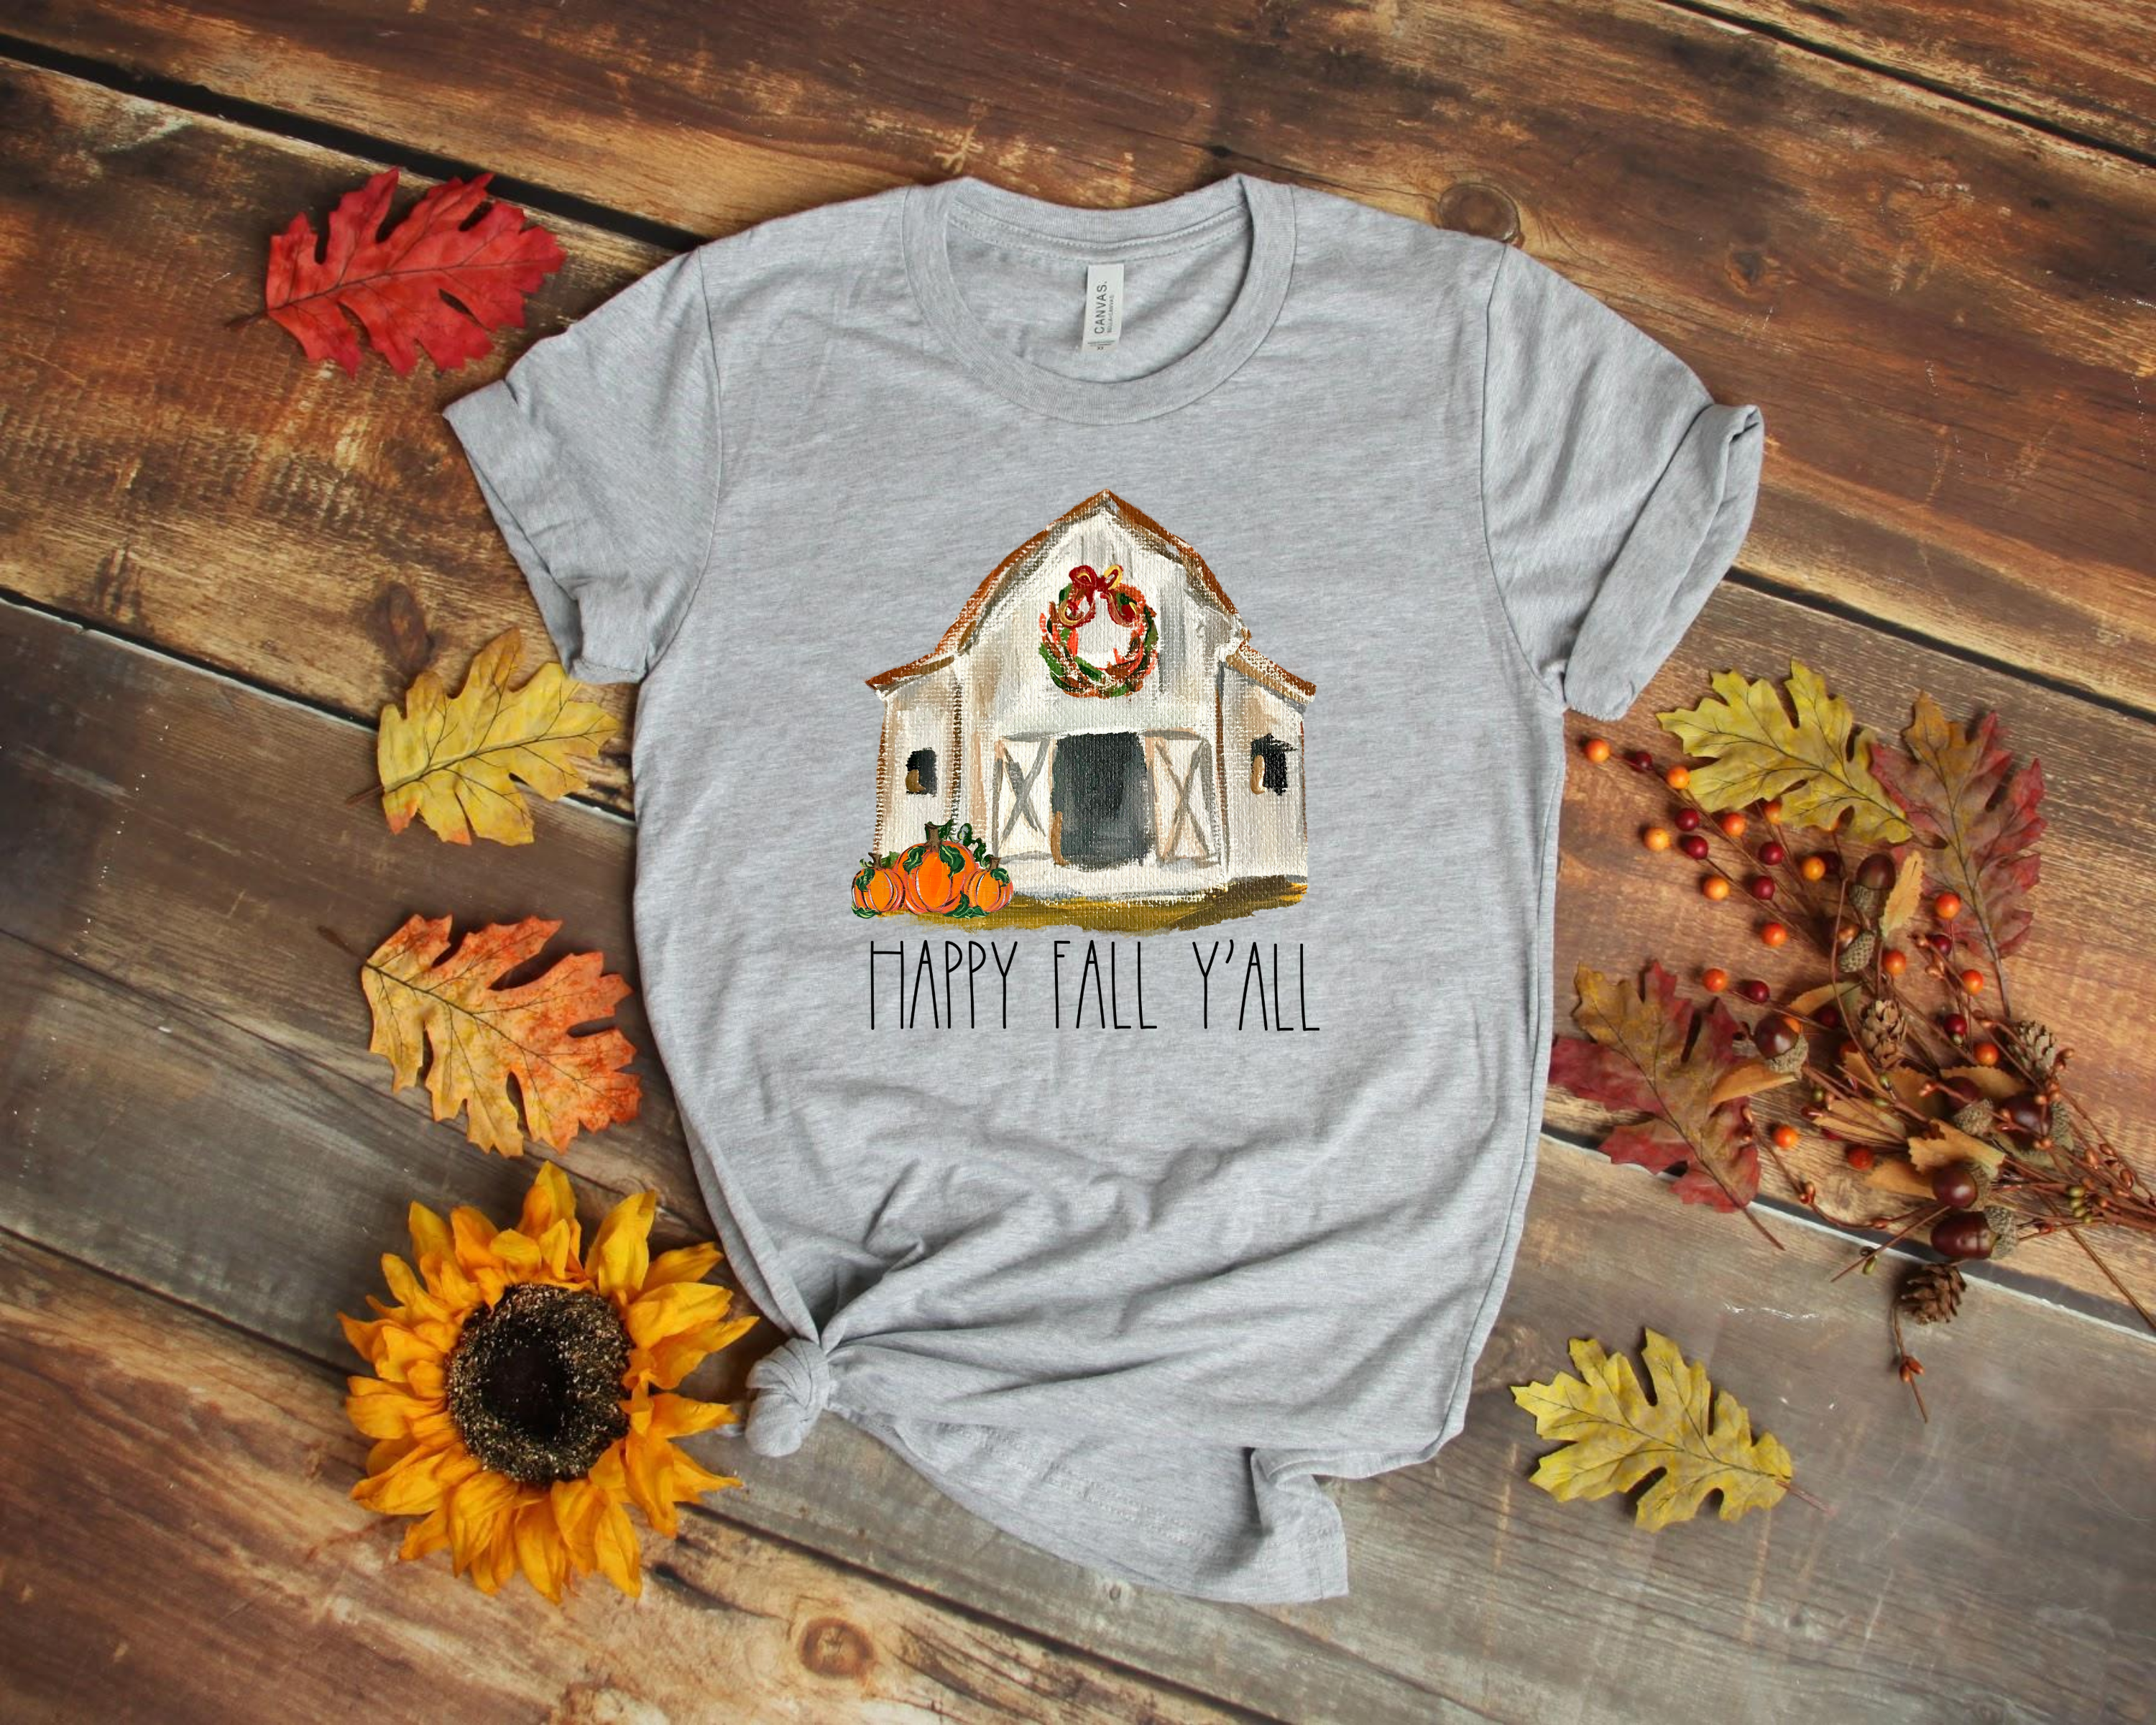 Happy Fall Y'all ~ Heather Athletic ~ Adult T-Shirt-Shop-Wholesale-Womens-Boutique-Custom-Graphic-Tees-Branding-Gifts